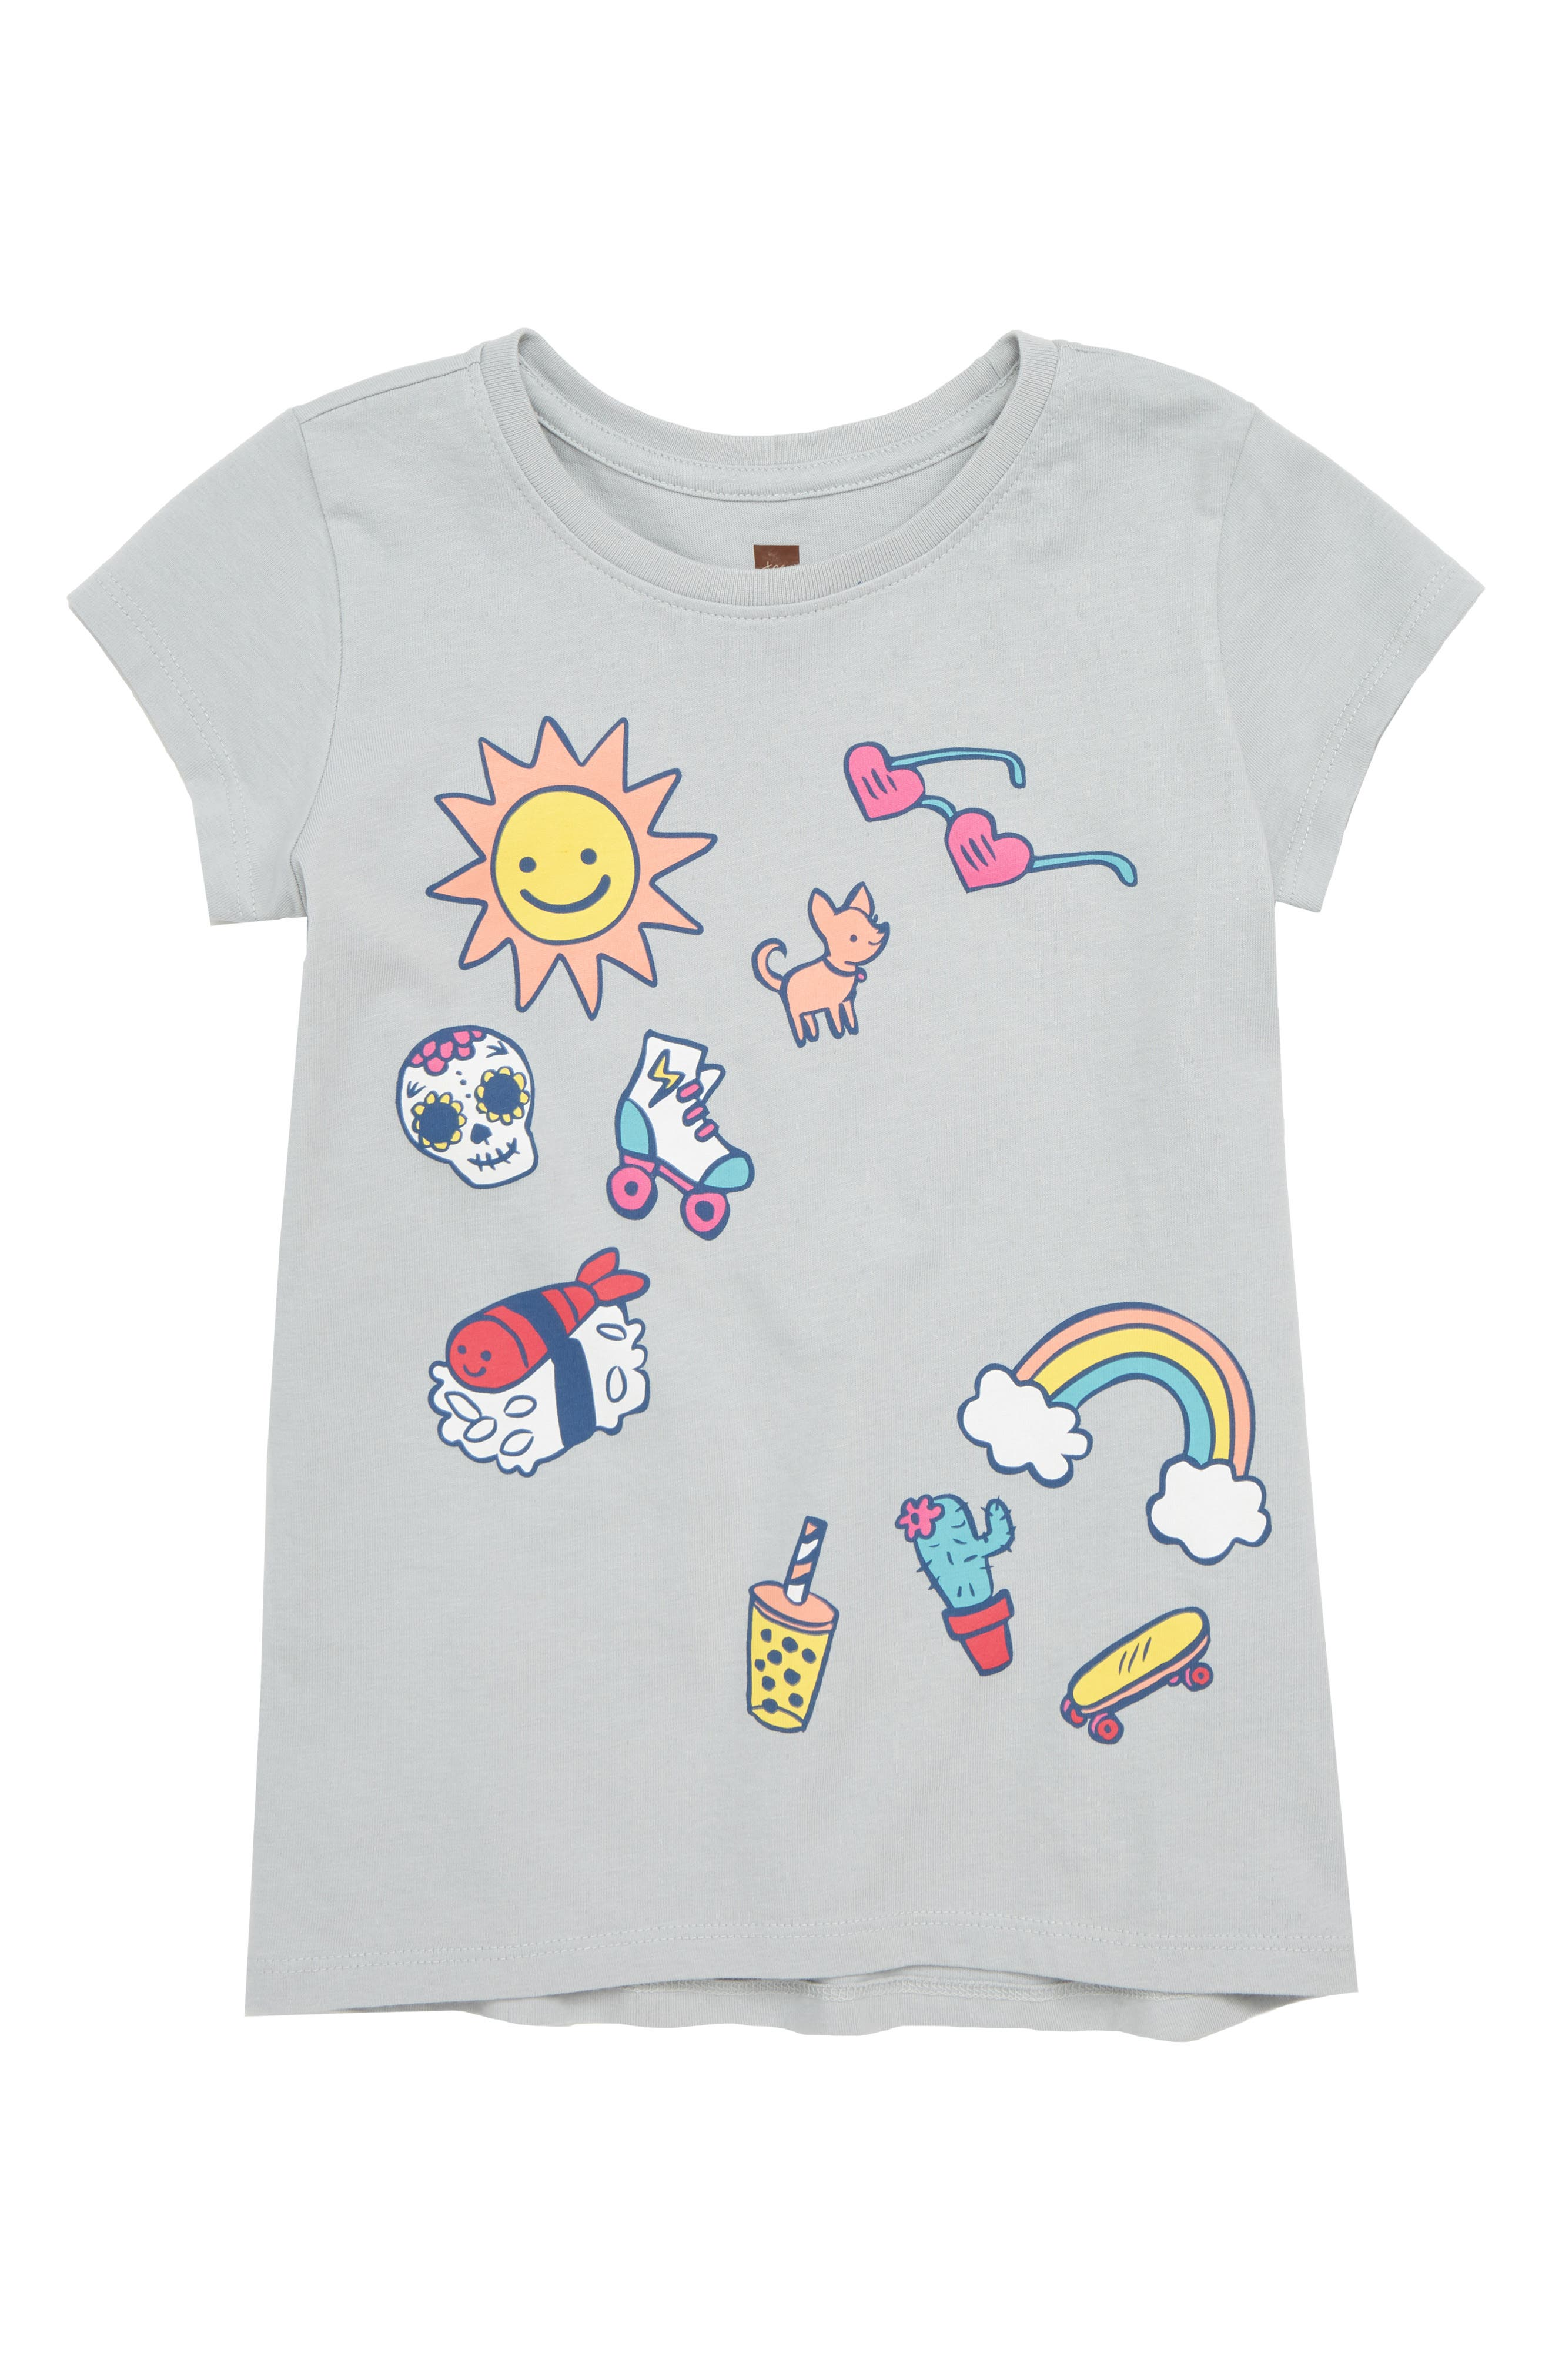 Collage Tee,                             Main thumbnail 1, color,                             035